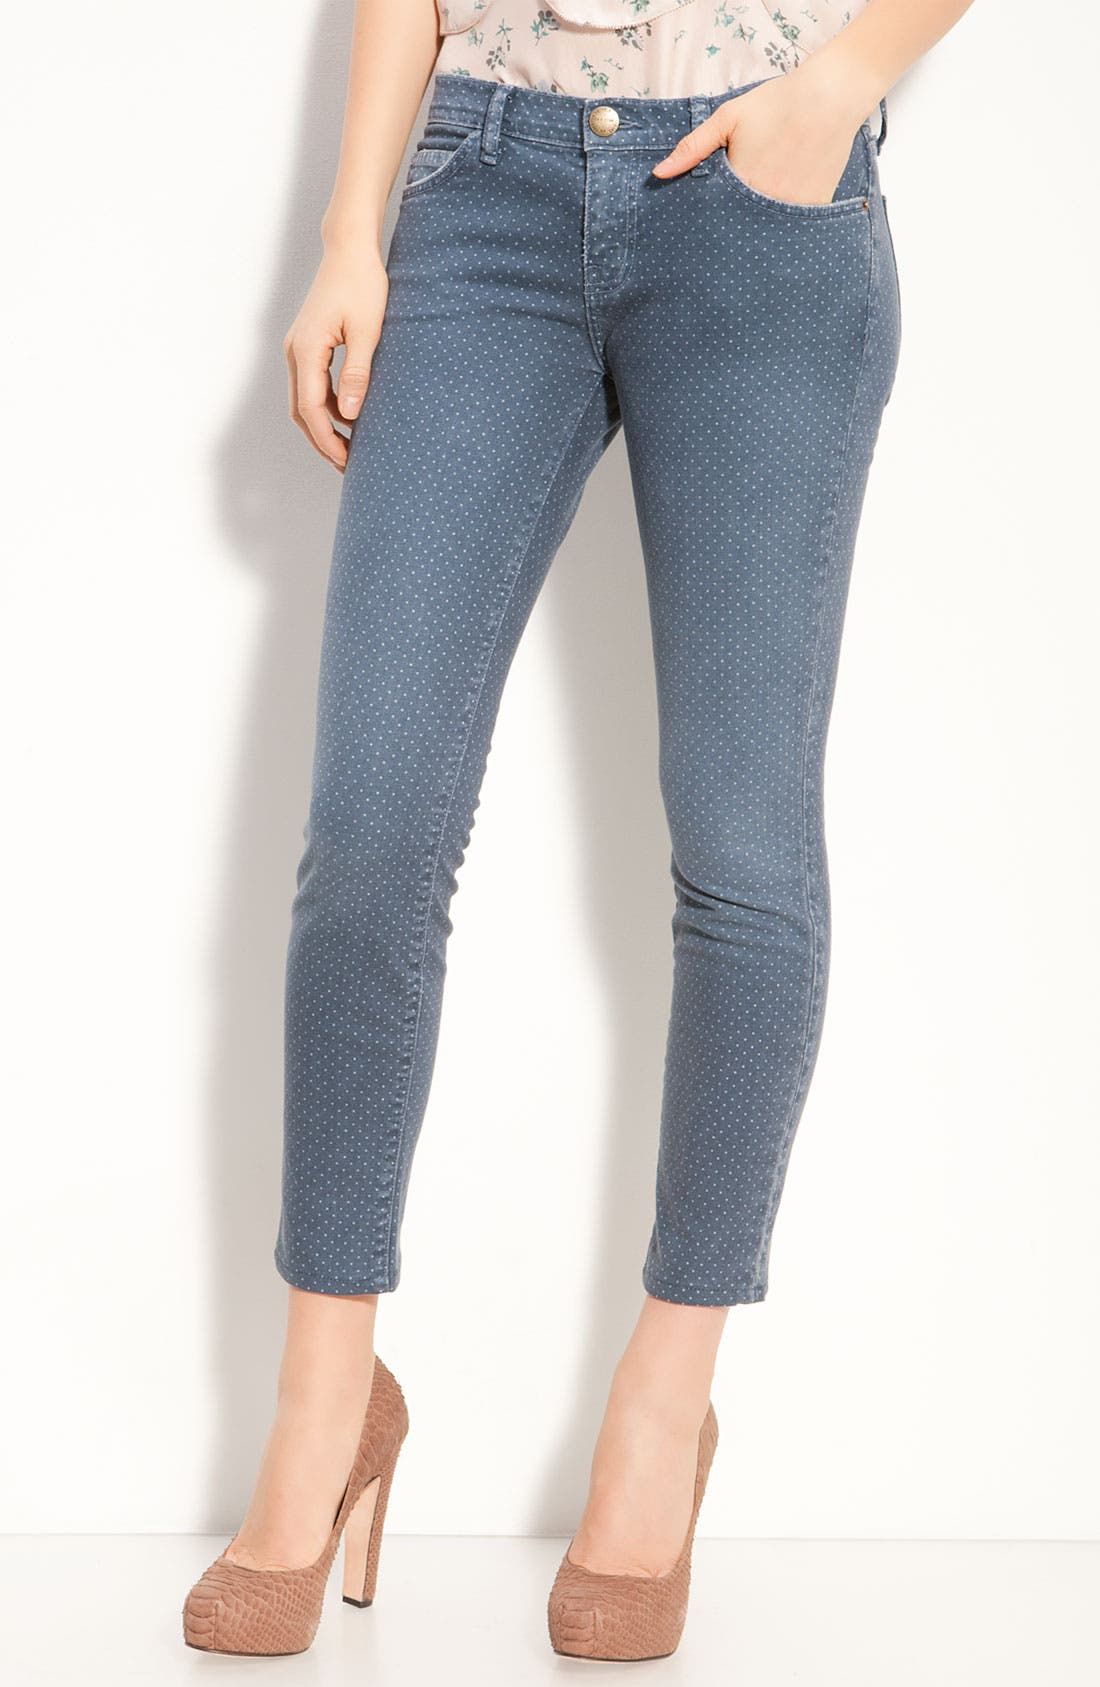 Main Image - Current/Elliott 'The Stiletto' Stretch Jeans (Lake Wash)